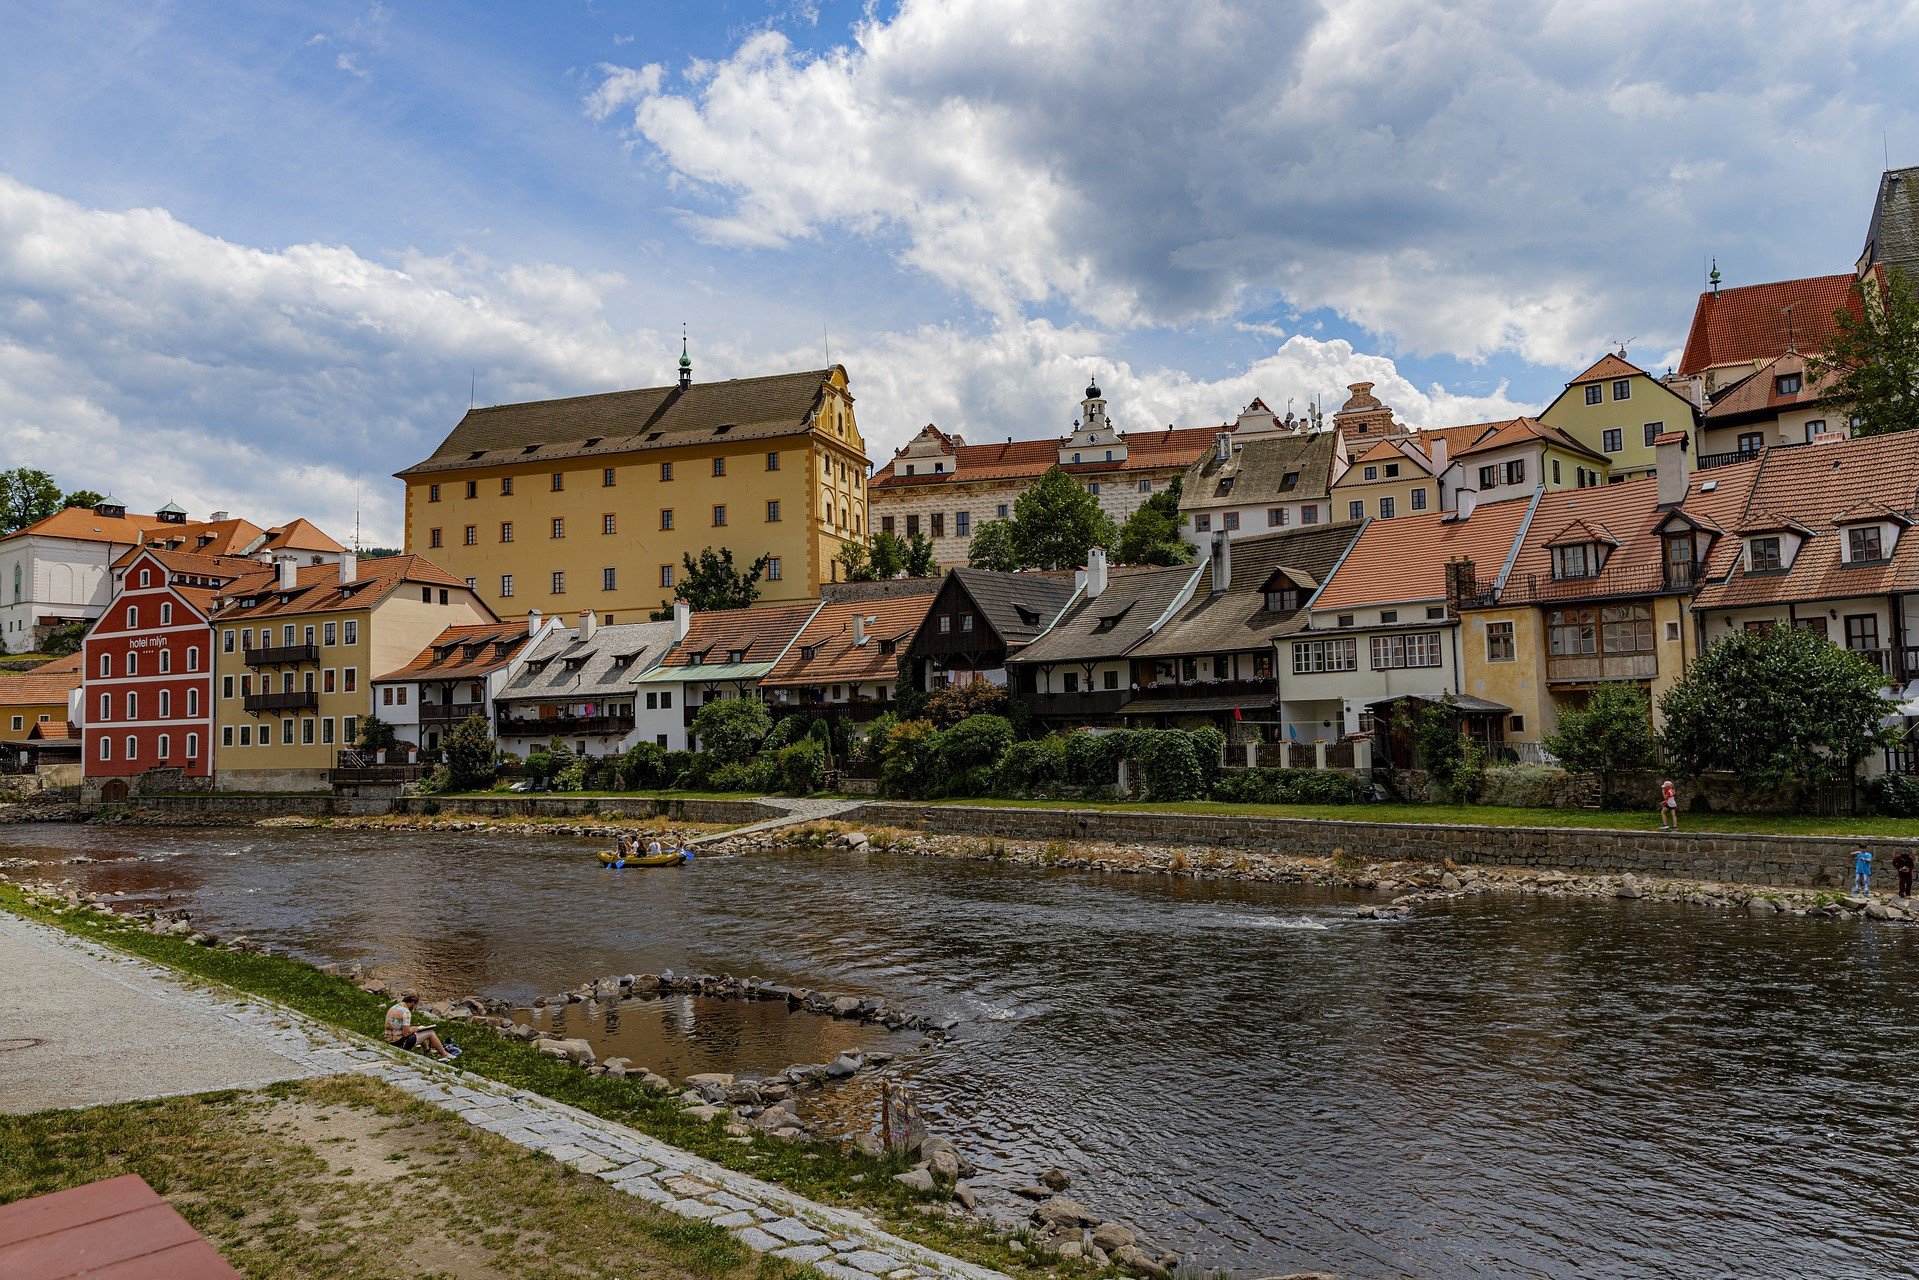 Colorful houses lining the Vltava River in Cesky Krumlov, south Bohemia